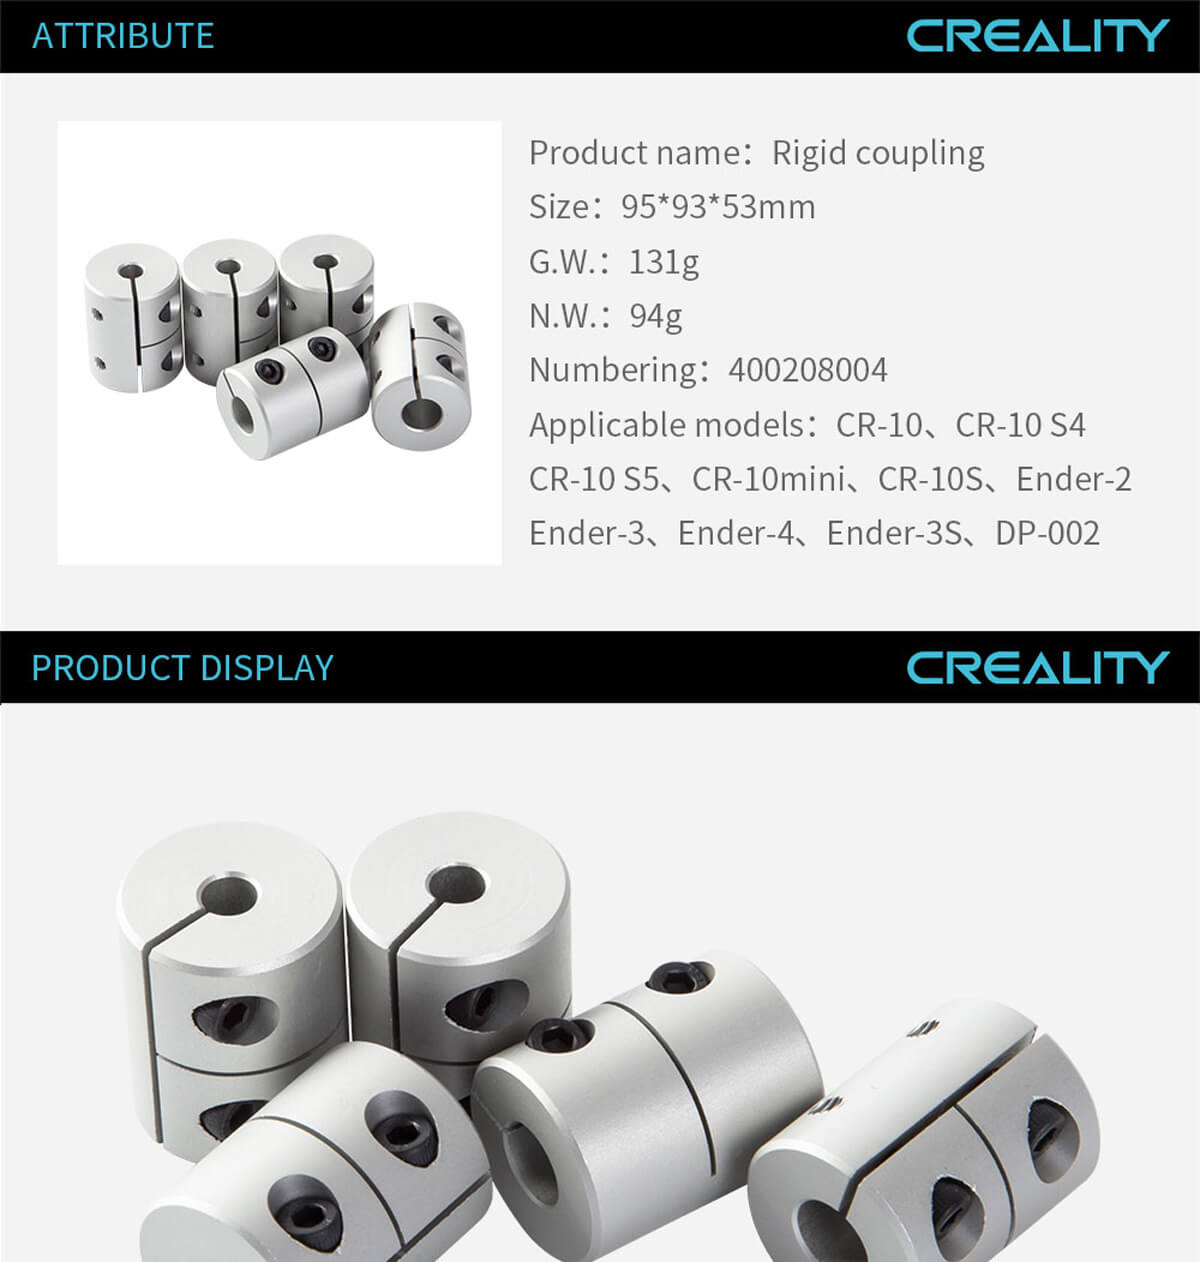 creality-3d-printer-Rigid-Coupling-11